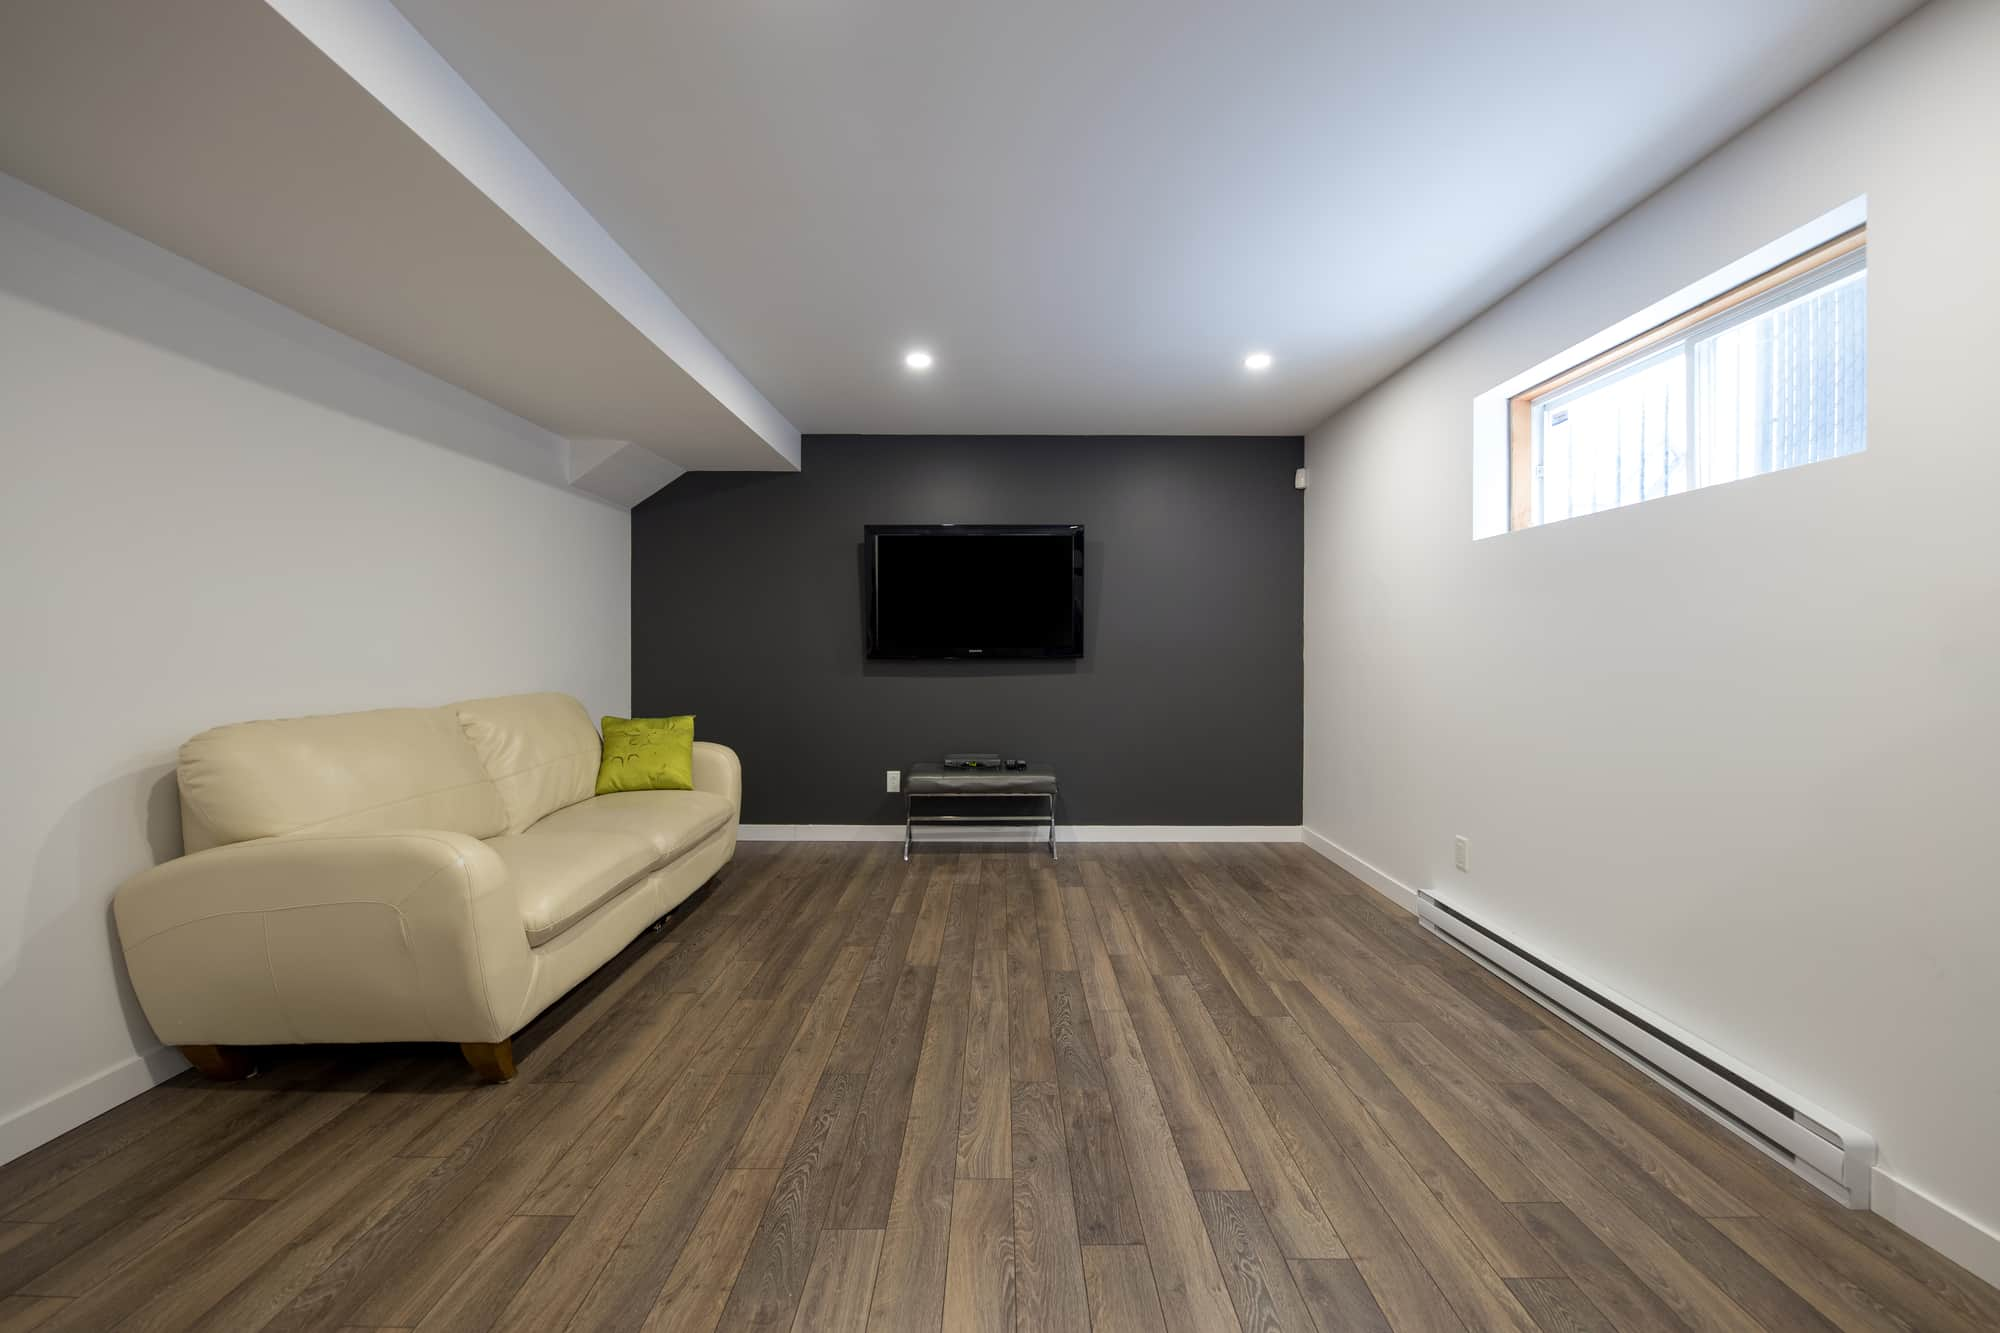 Basement renovation with floating wooden floor